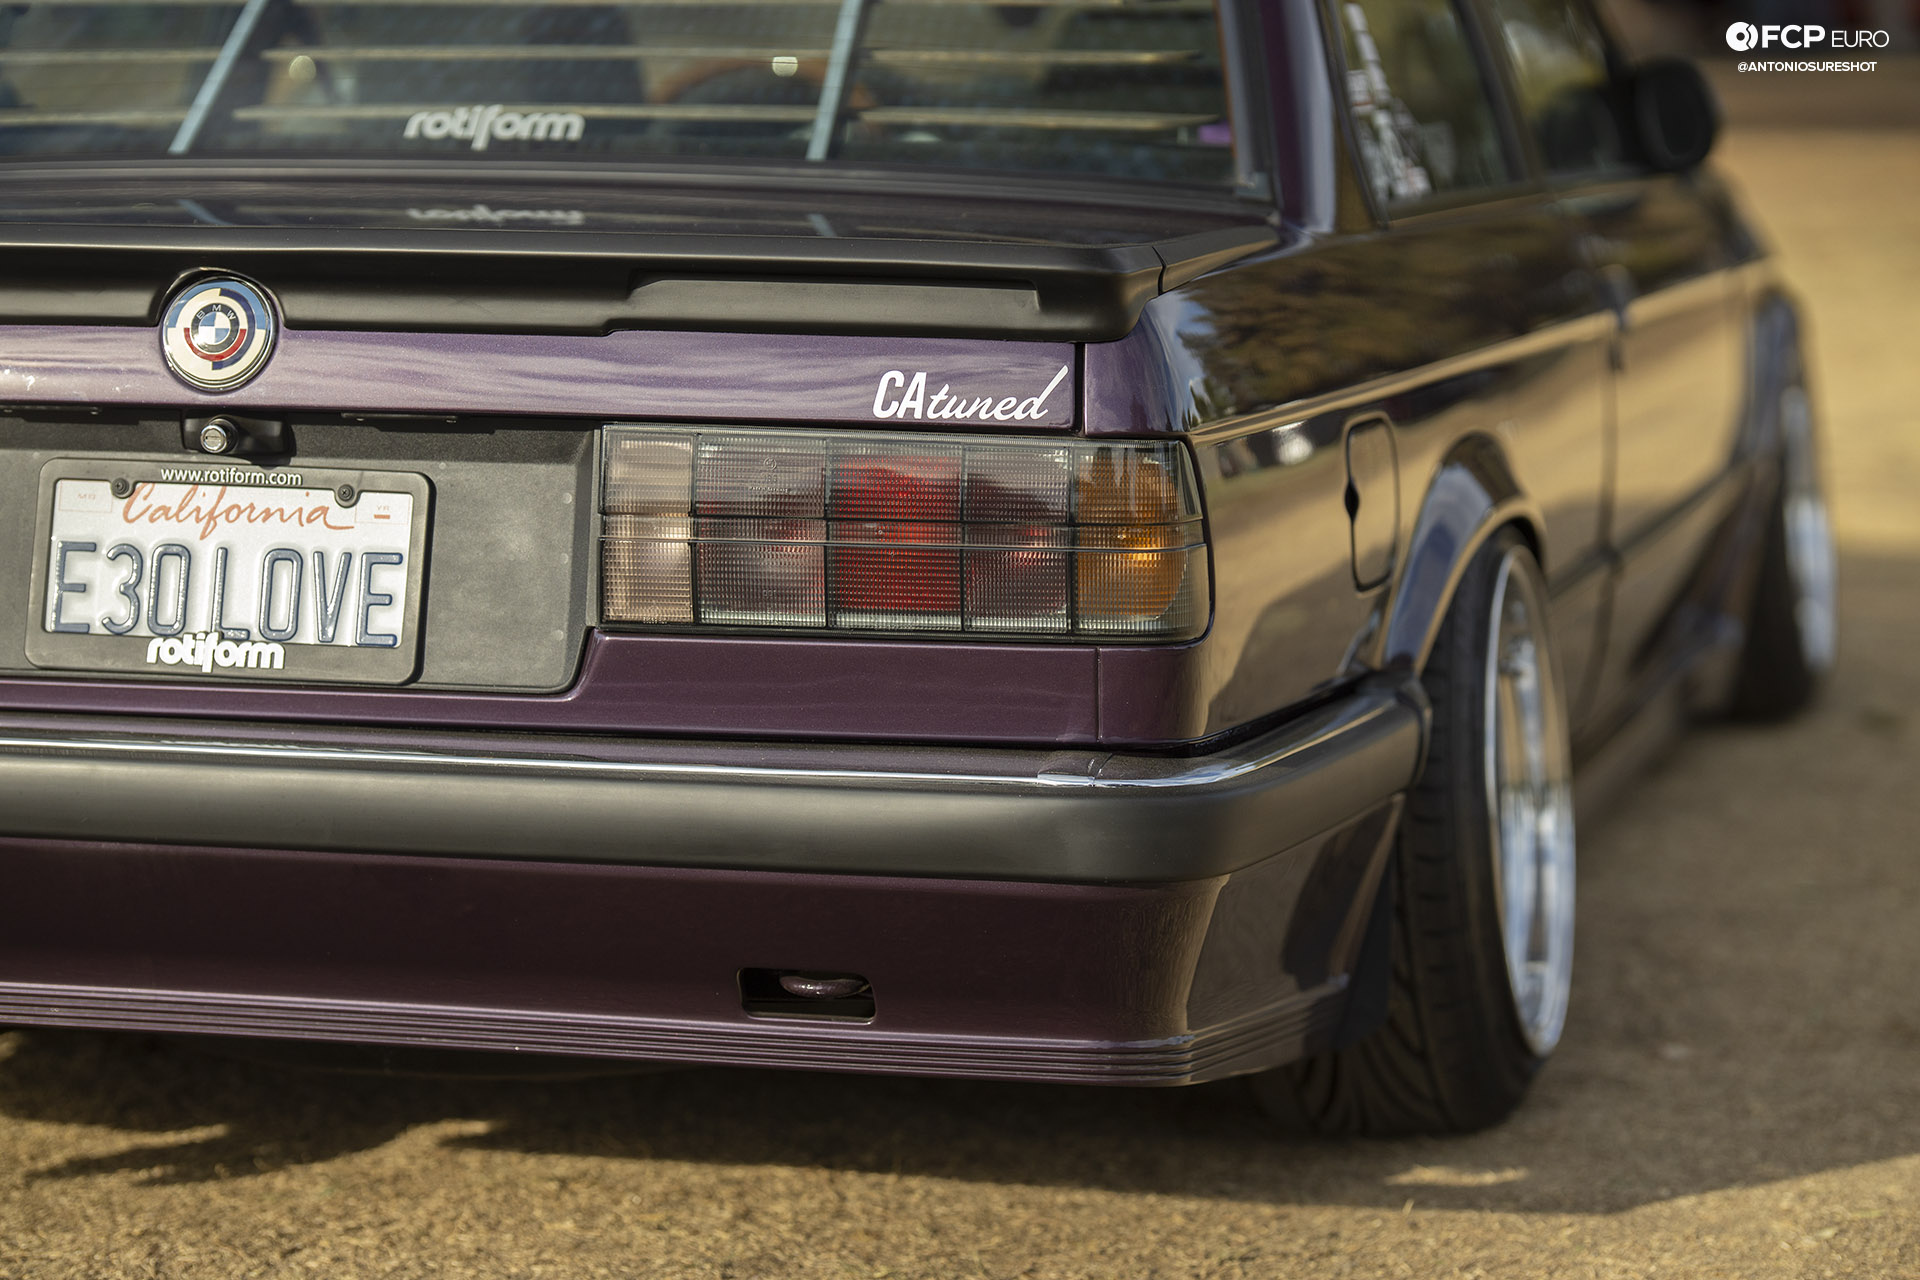 CAtuned Daytona Violet E30 BMW Tail Lights